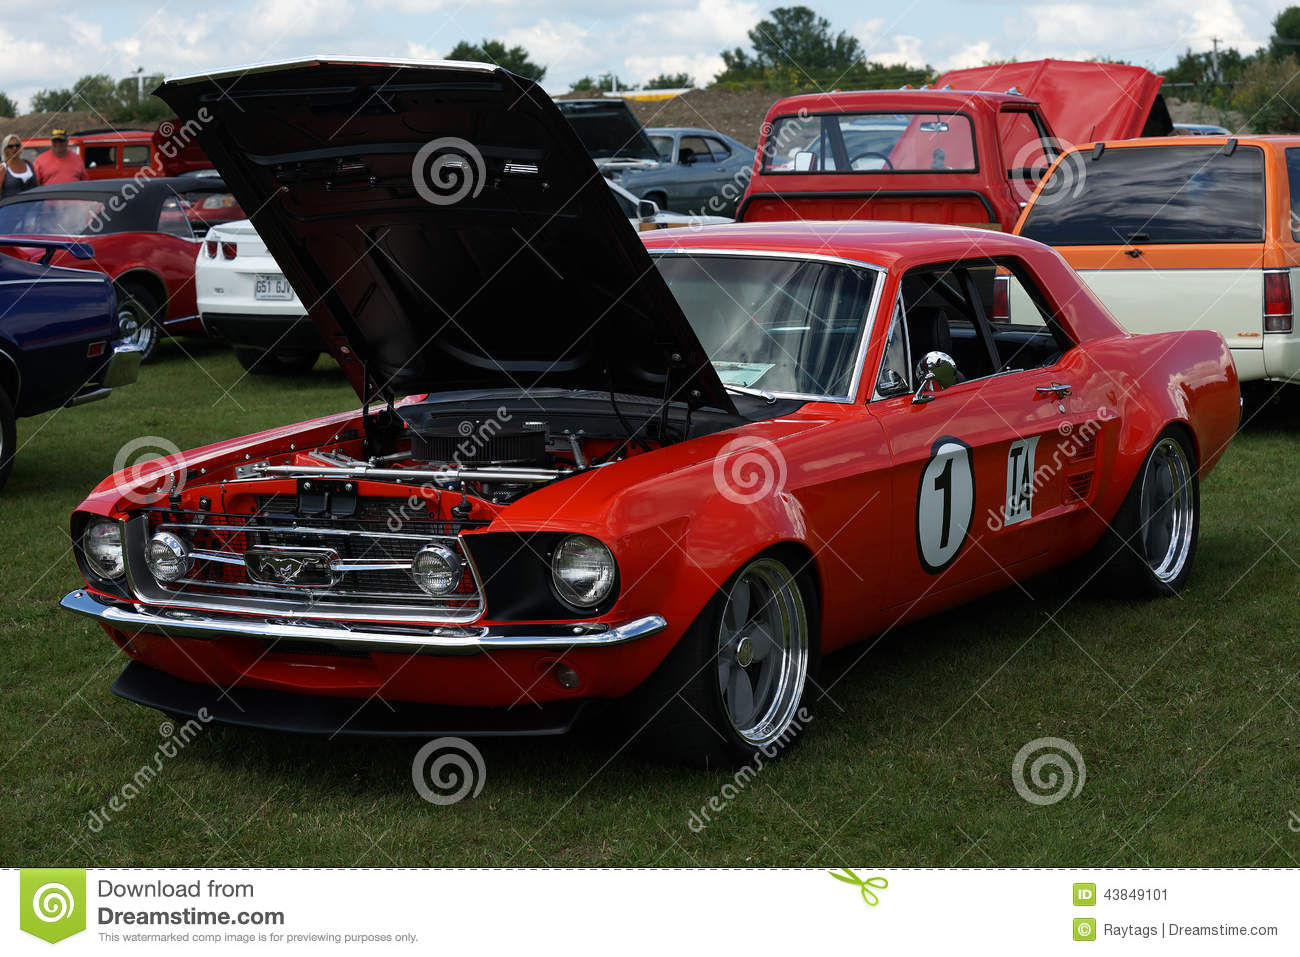 American Muscle Car >> Mustang trans am editorial photo. Image of mustang, power - 43849101